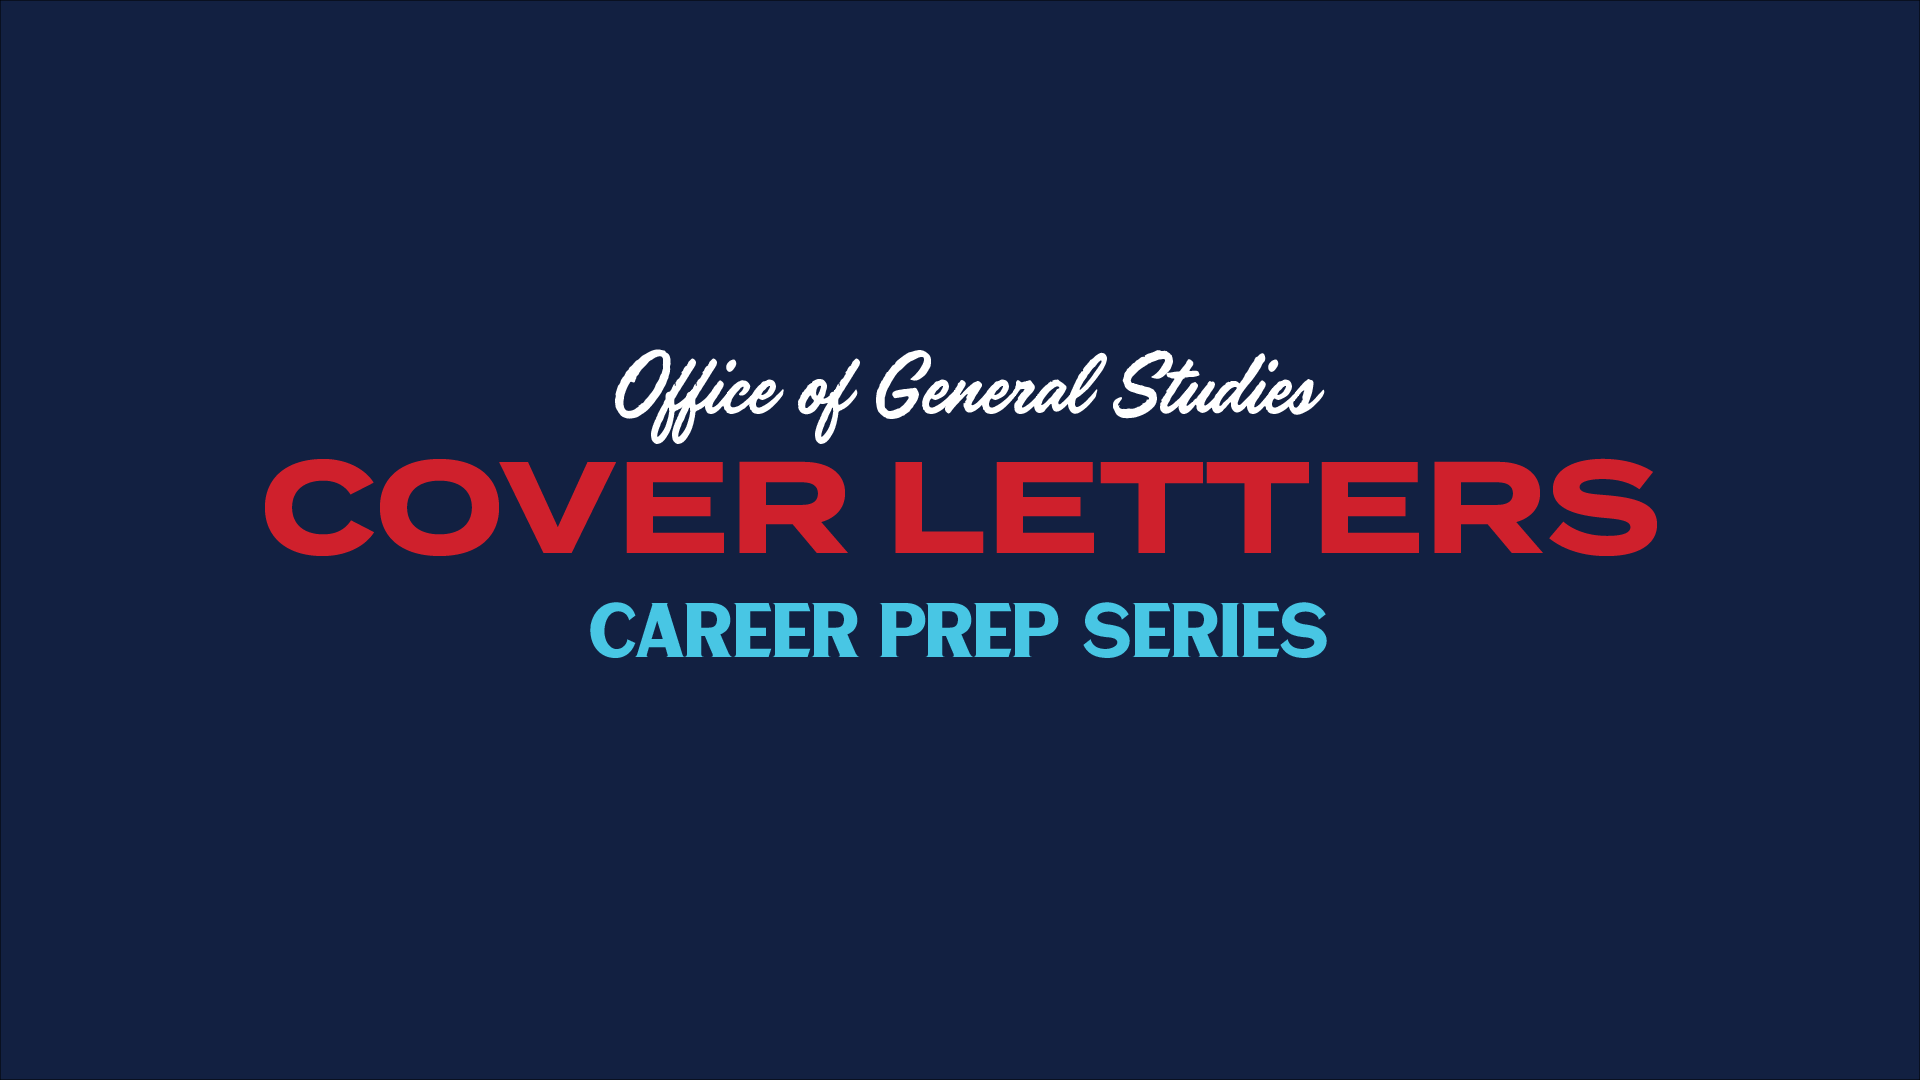 graphic for cover letter career prep video